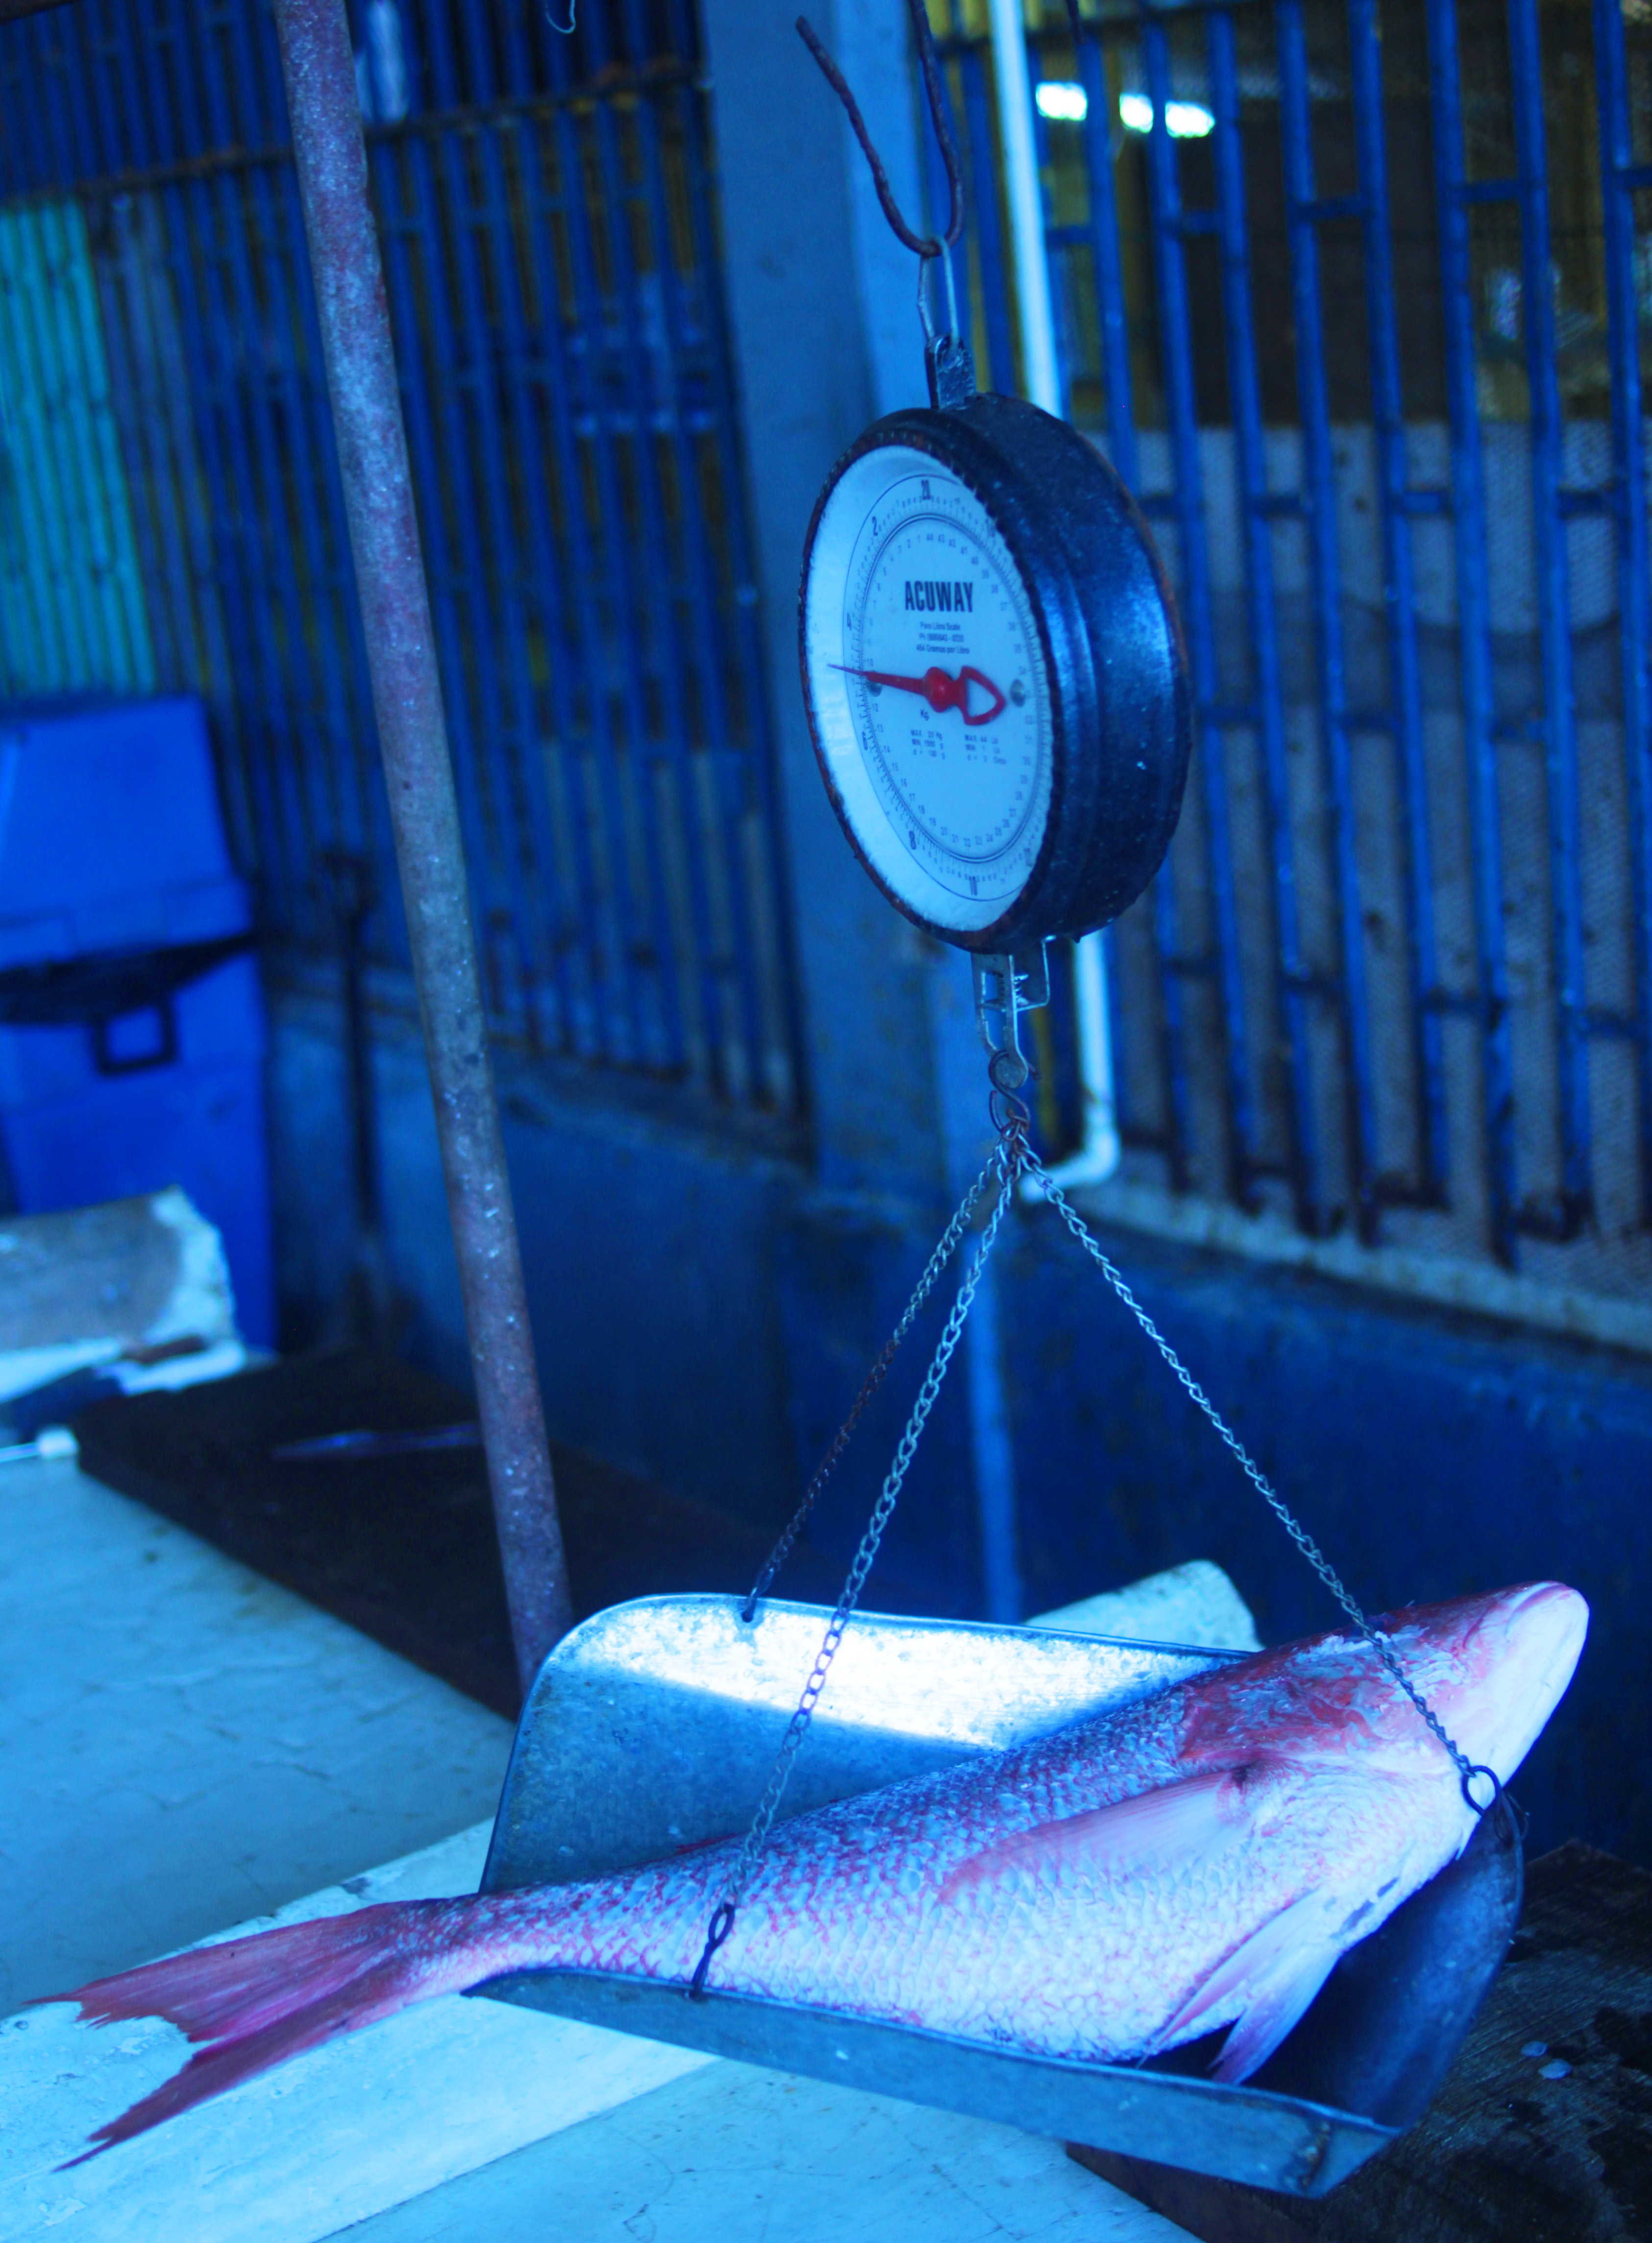 Market Scale with Red Snapper Fish